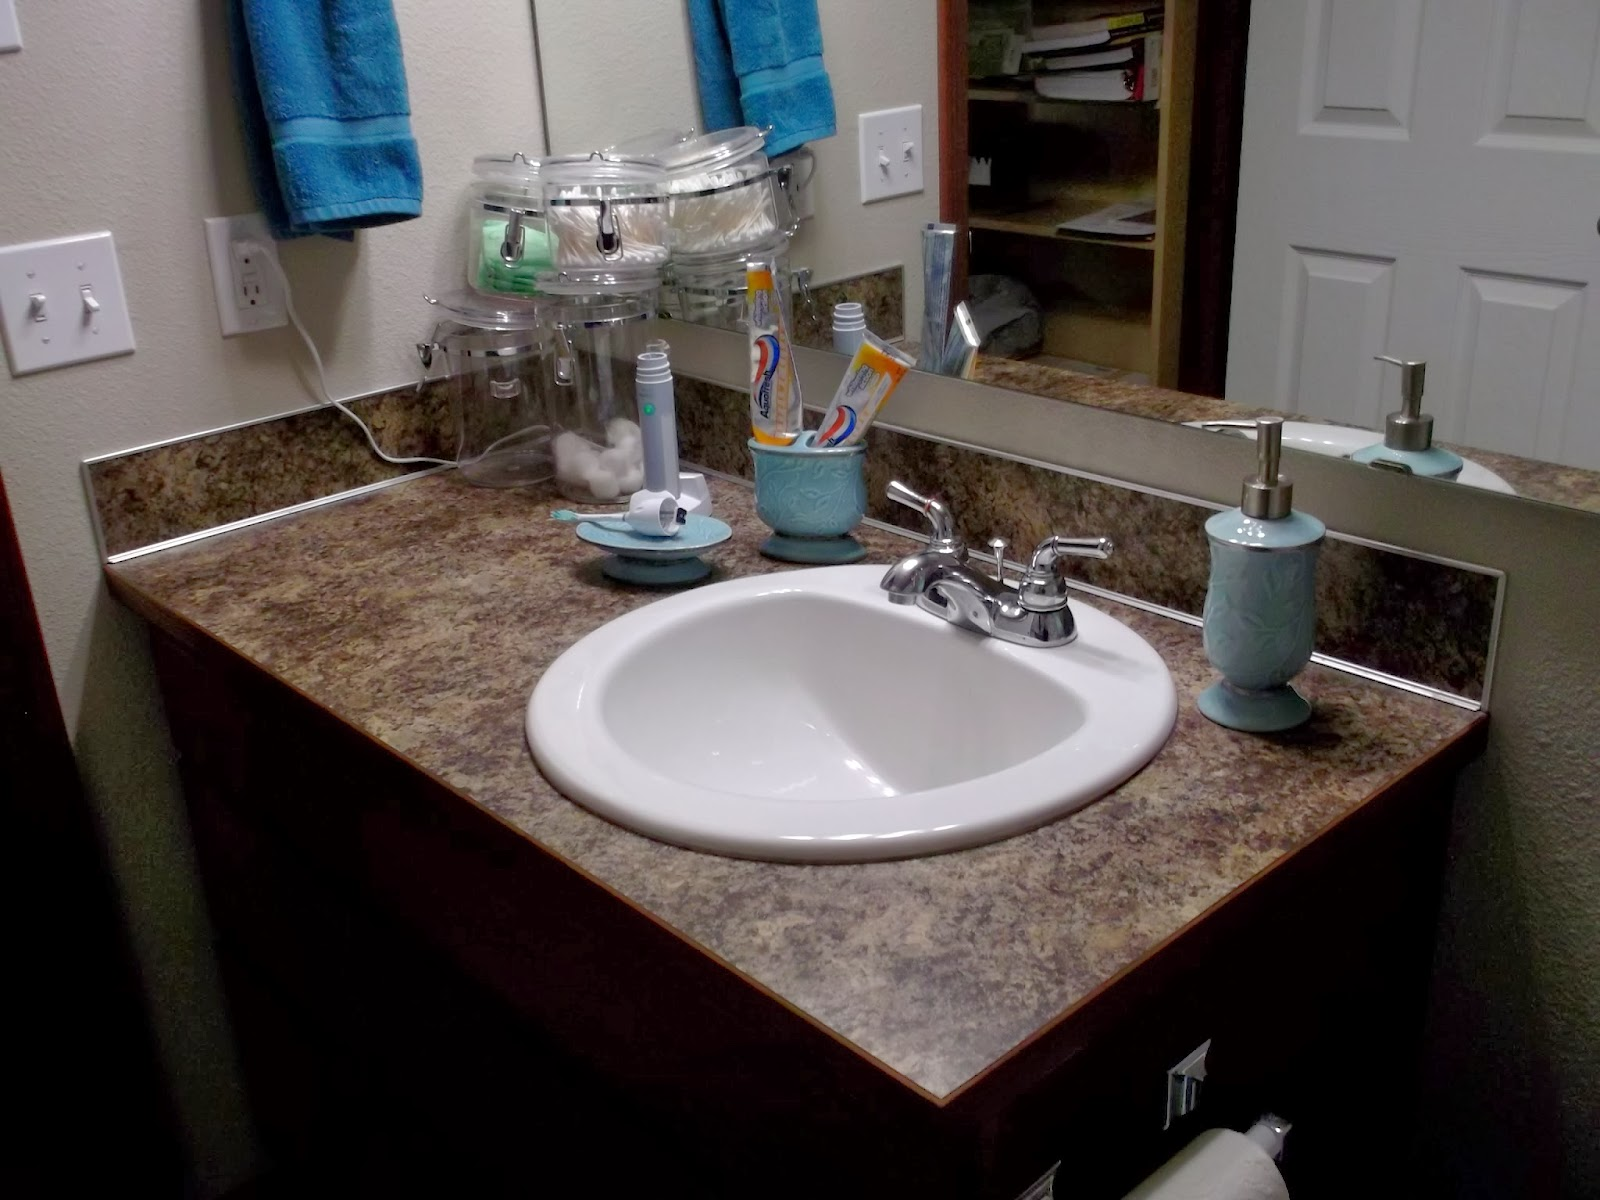 Katrinas Point Of View How To Clean Your Bathroom Fast And Thorough In 10 Easy Steps